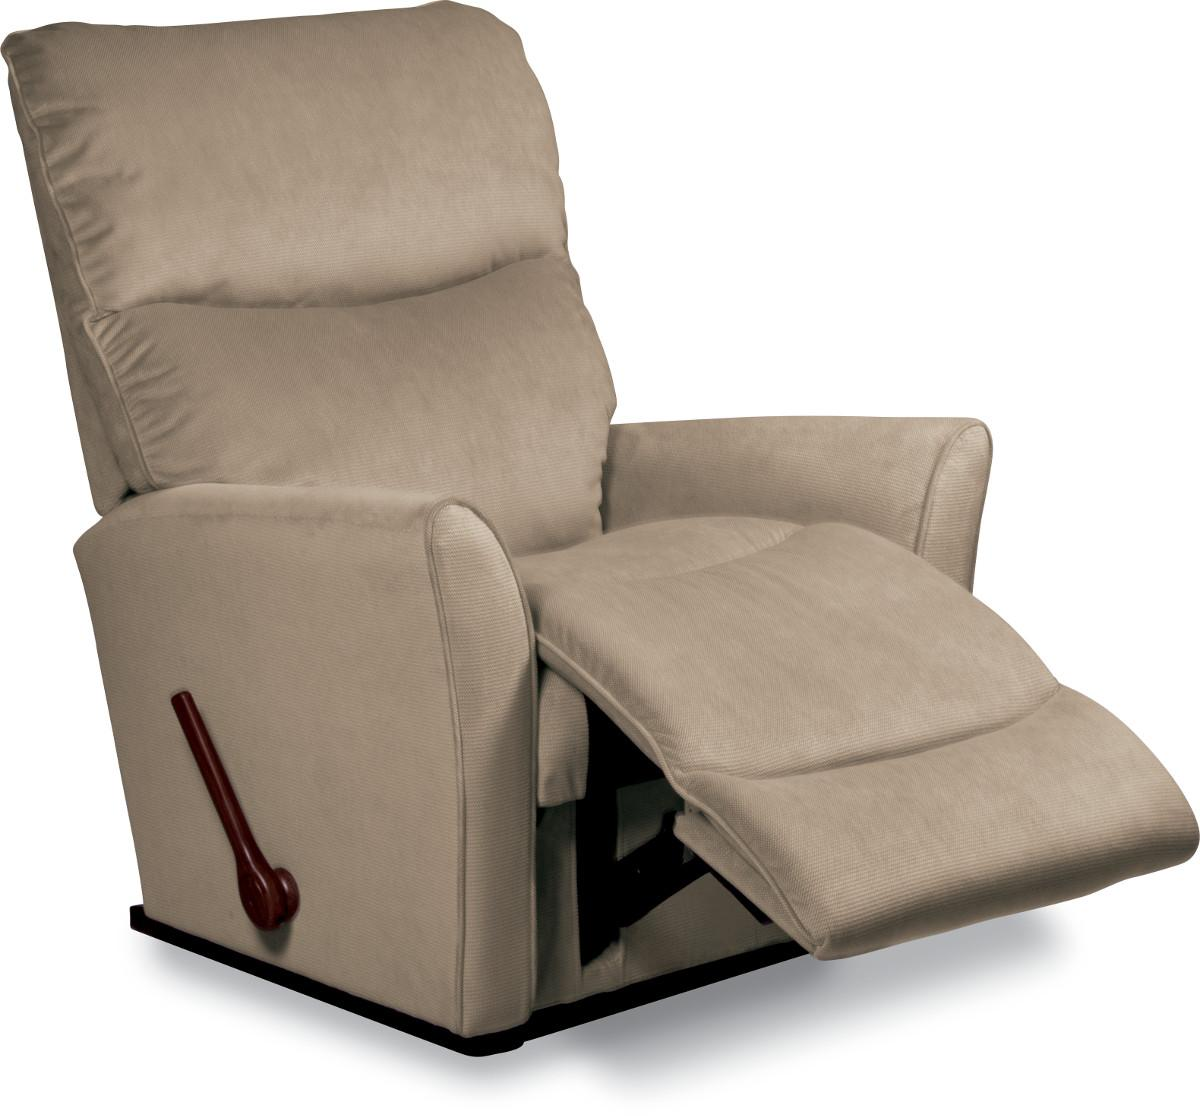 Rowan Small Scale Reclina Rocker 174 Recliner With Flared